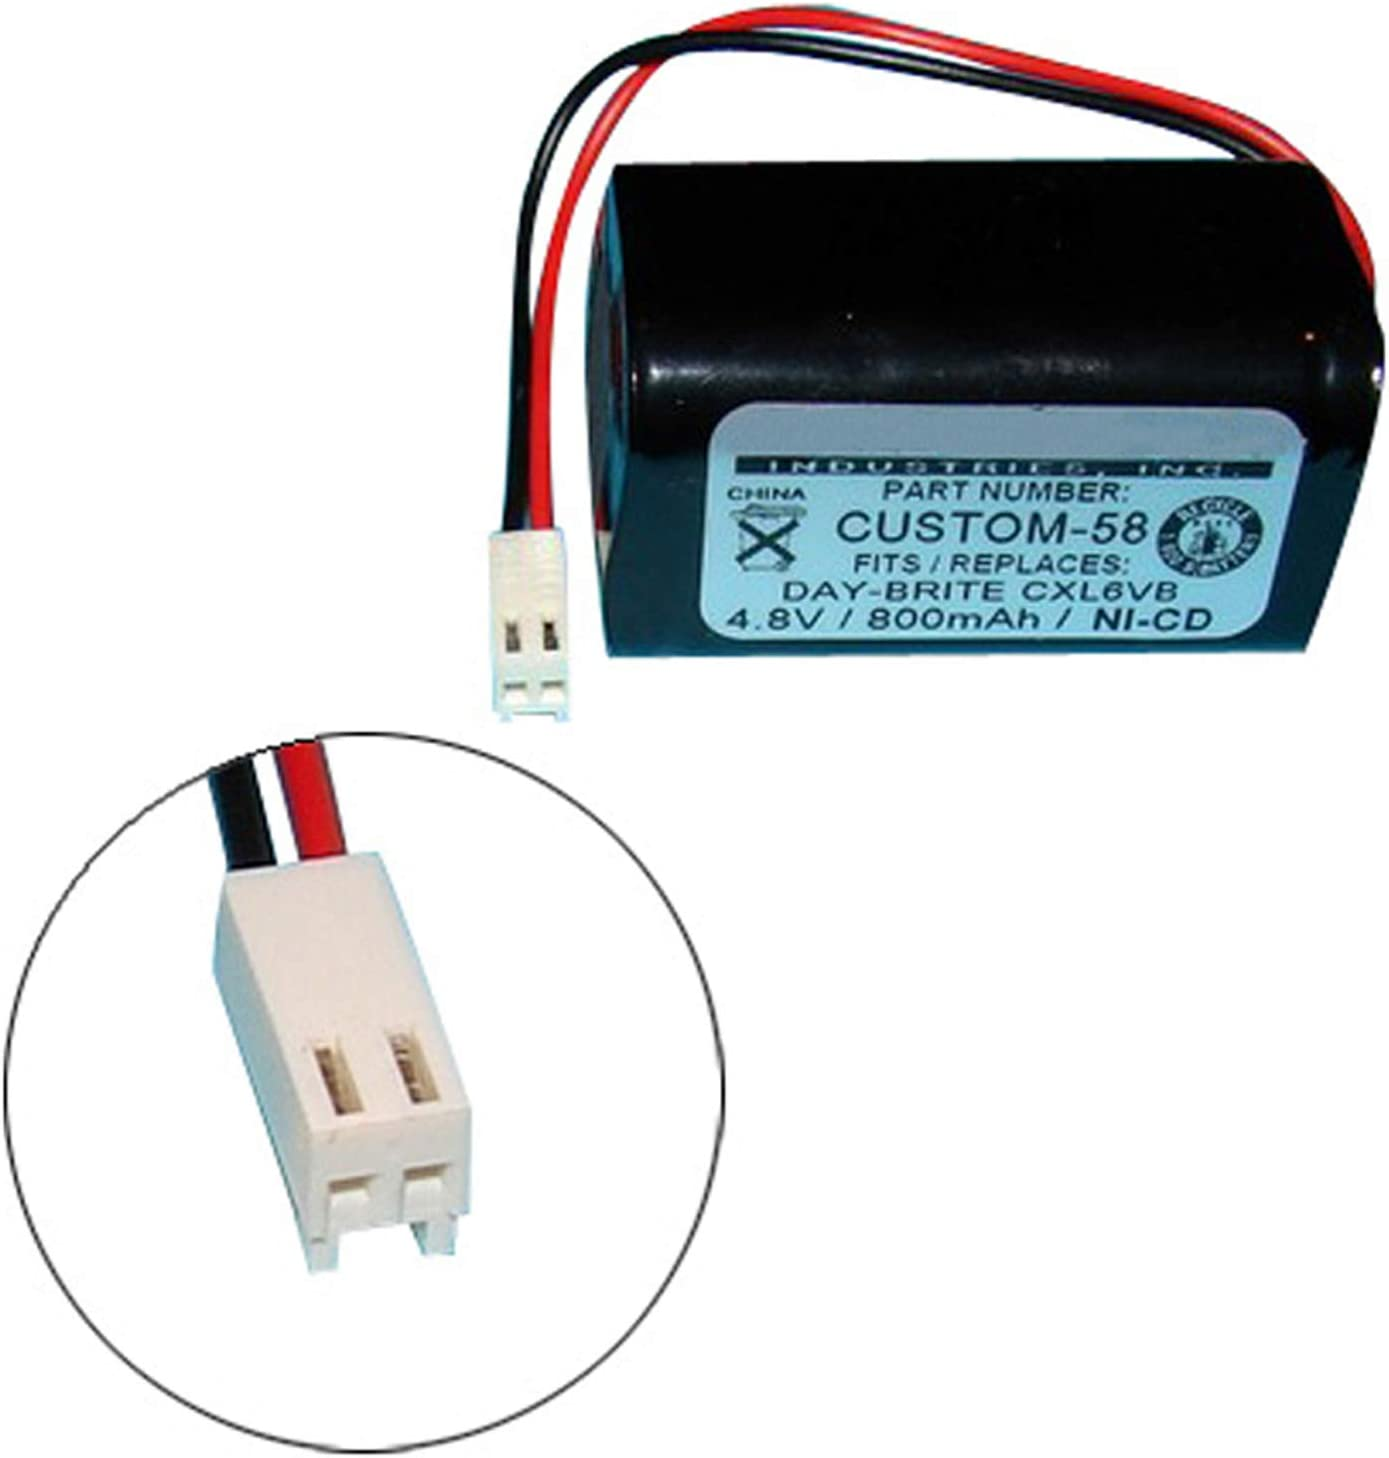 Day-Brite CXL6VB Interstate ANIC0938 CTL N700AAC-F22C//C Emergency//Exit Lighting Battery Fits and Replaces CTL 685896020 Interstate NIC0939 Fast USA Ship